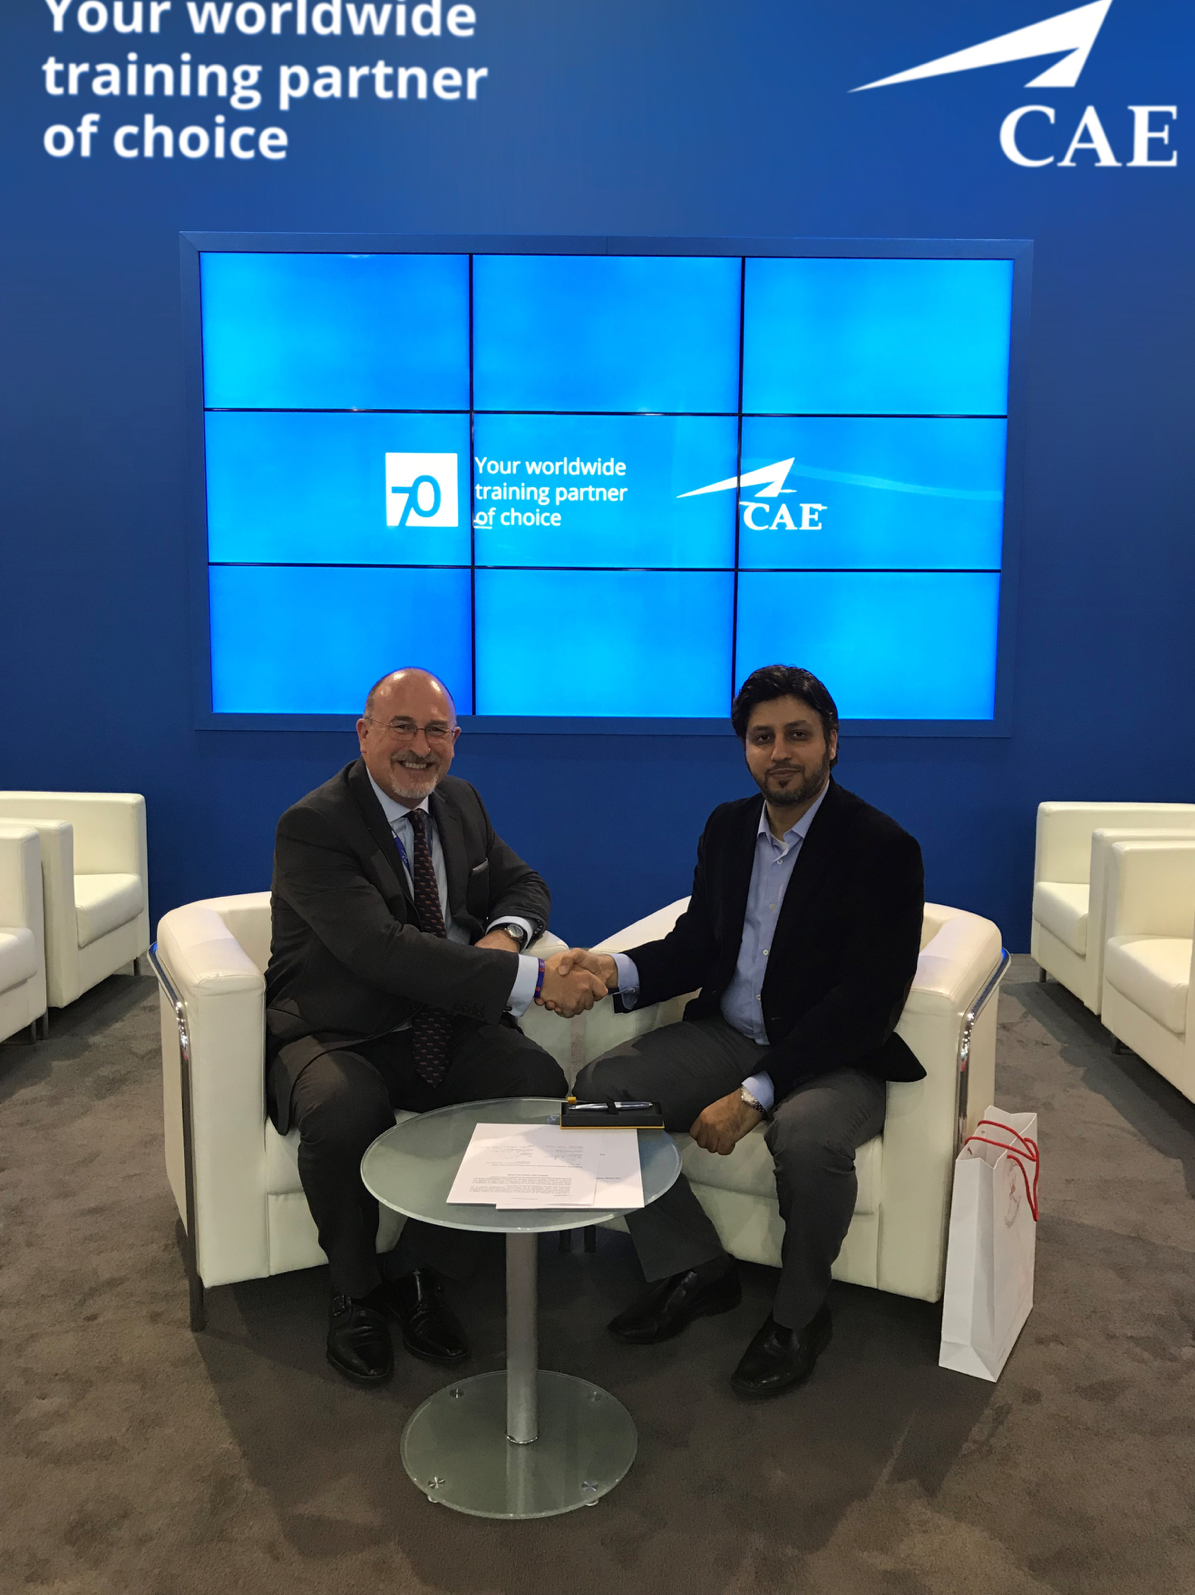 Ian Bell, CAE (left) and Dr. Dhafir Awadh Al Shanfari, OAPFD (right) celebrate the signing of an agr